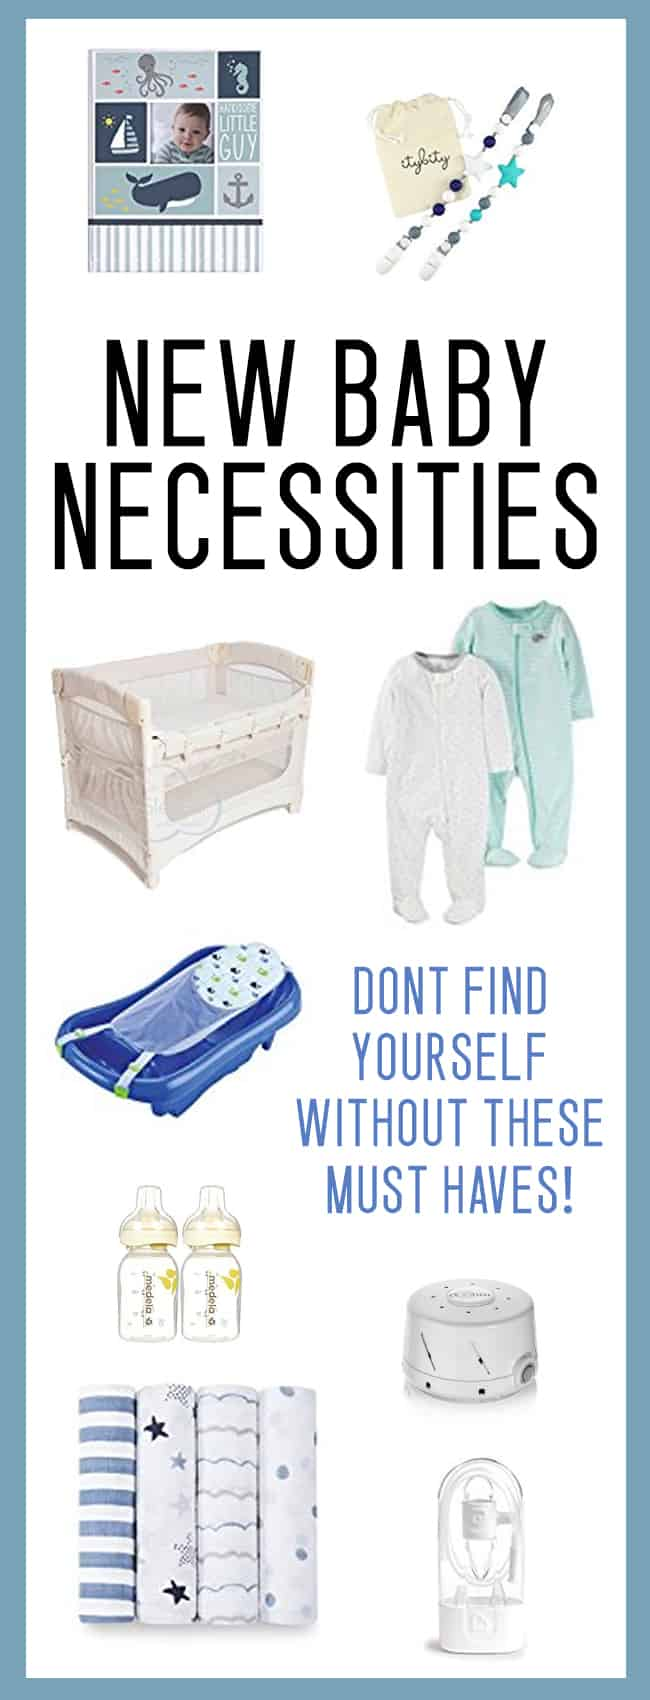 GREAT baby shower gift ideas / new baby necessities list!